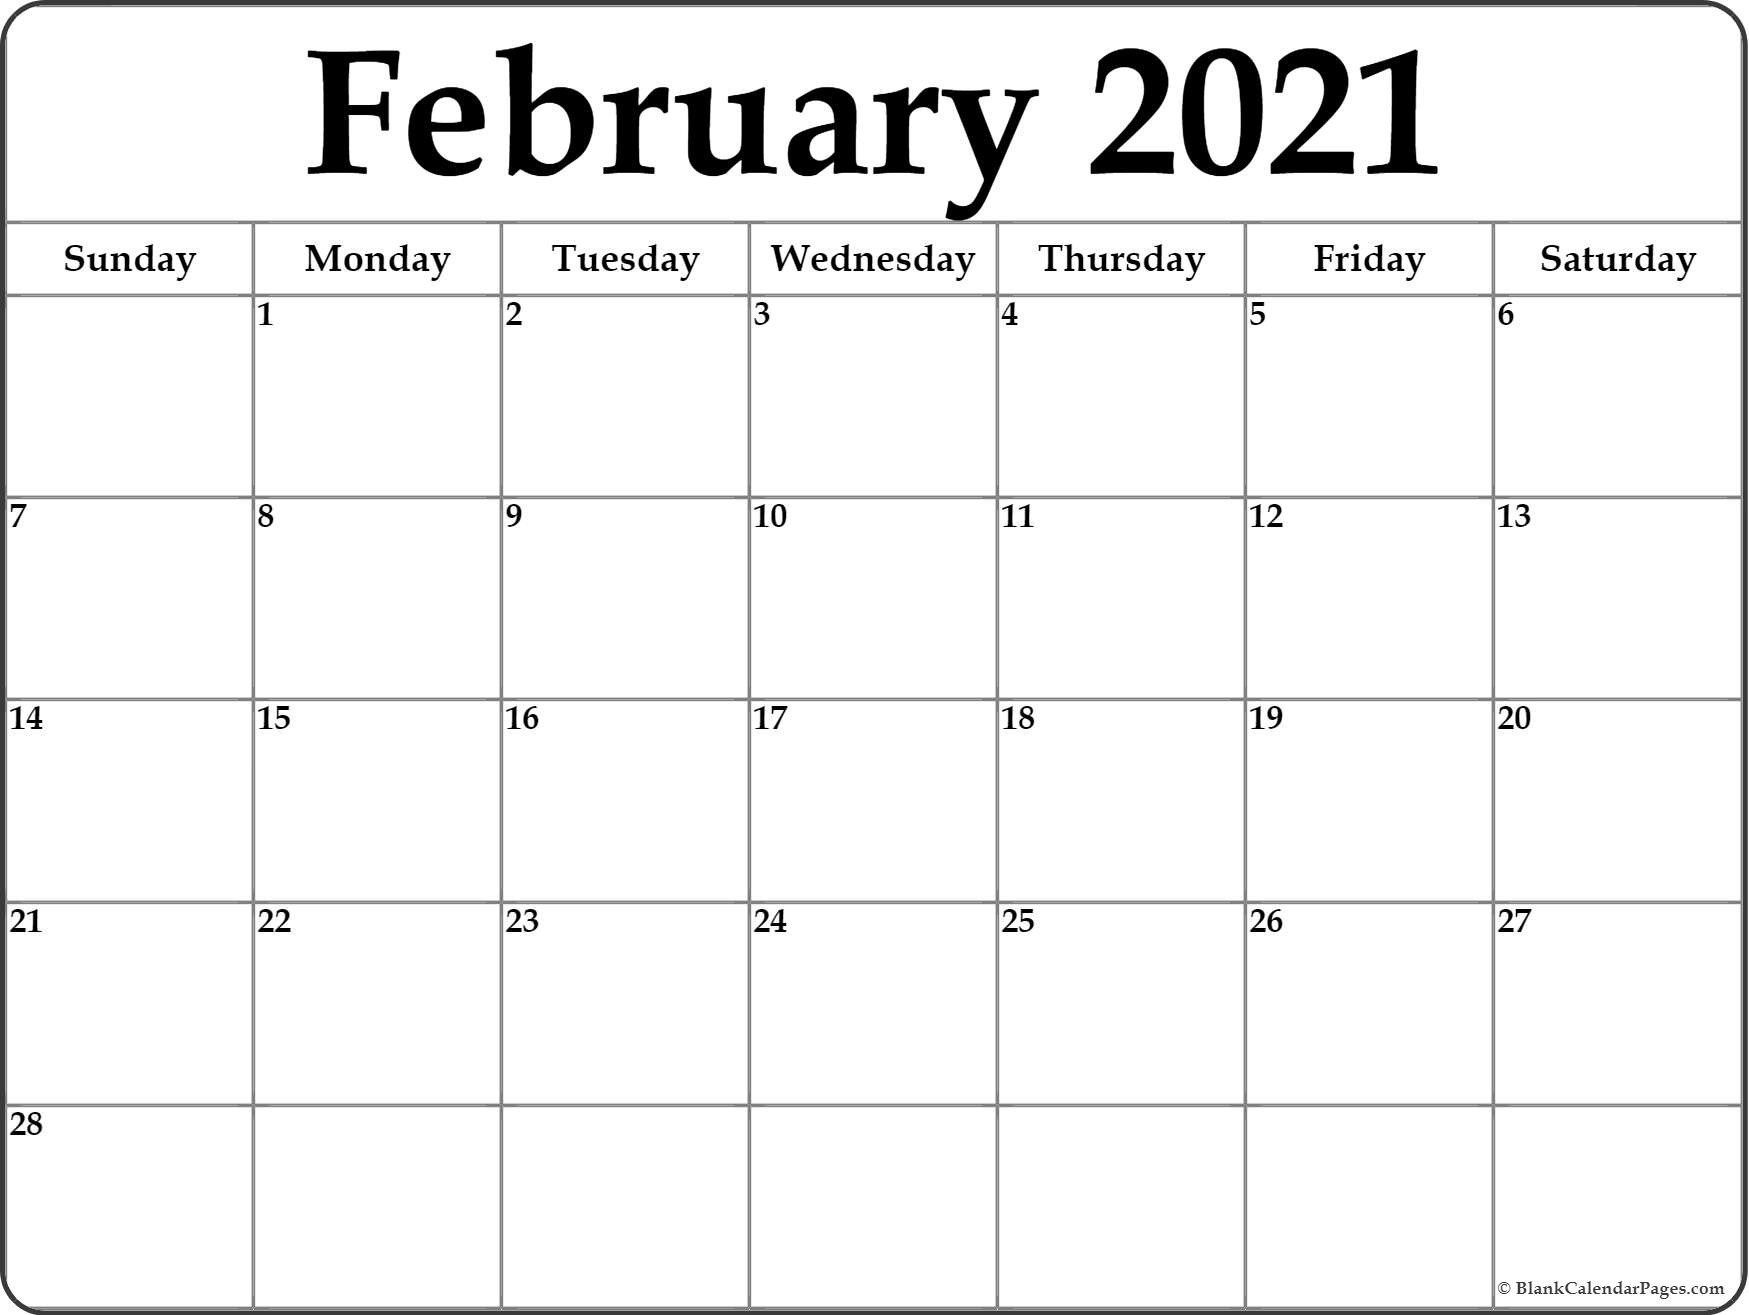 February 2021 Calendar | Free Printable Monthly Calendars  2021 Printable Calendar By Month